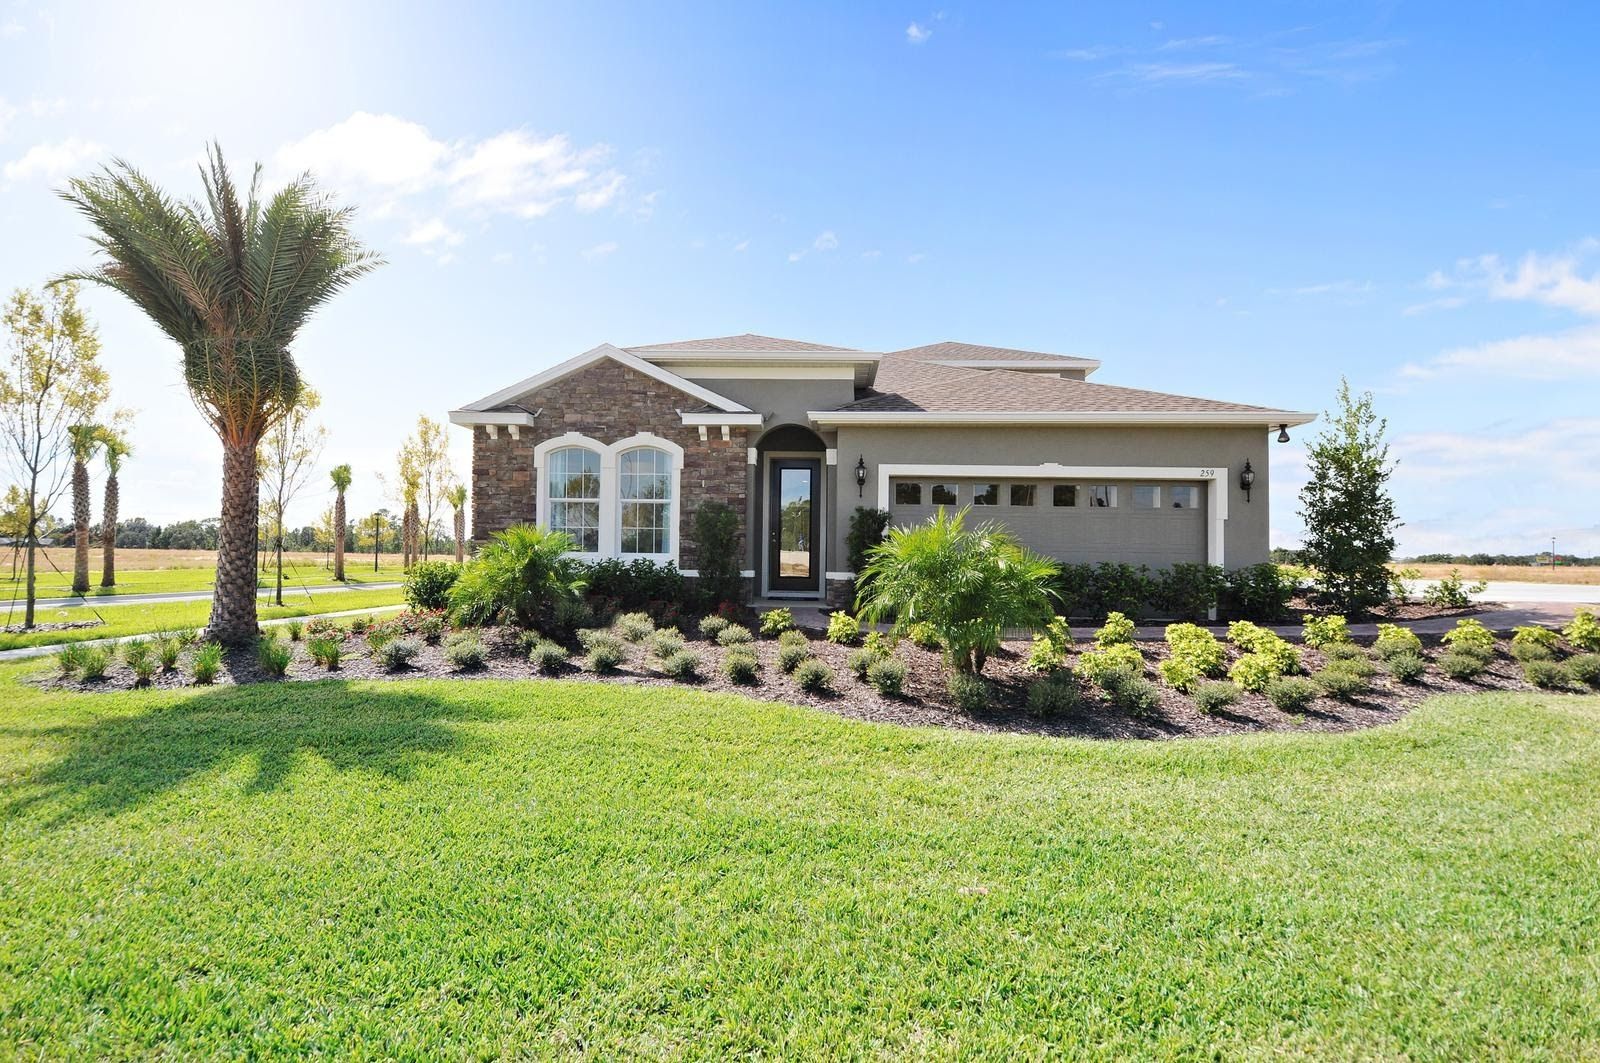 New Homes for sale at Forest Lake Estates in Ocoee, FL within the